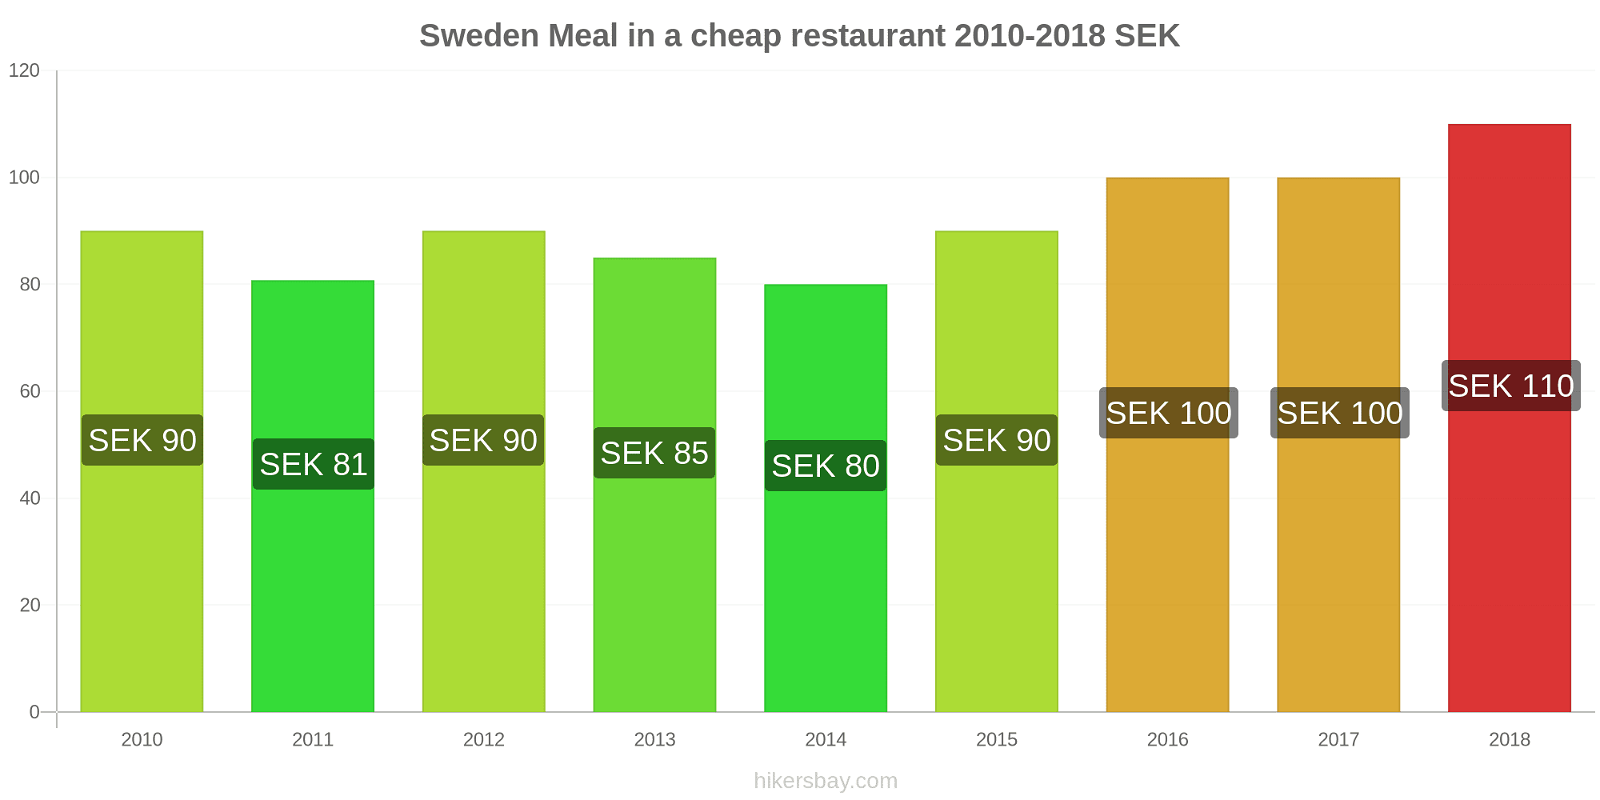 Sweden price changes Meal in a cheap restaurant hikersbay.com